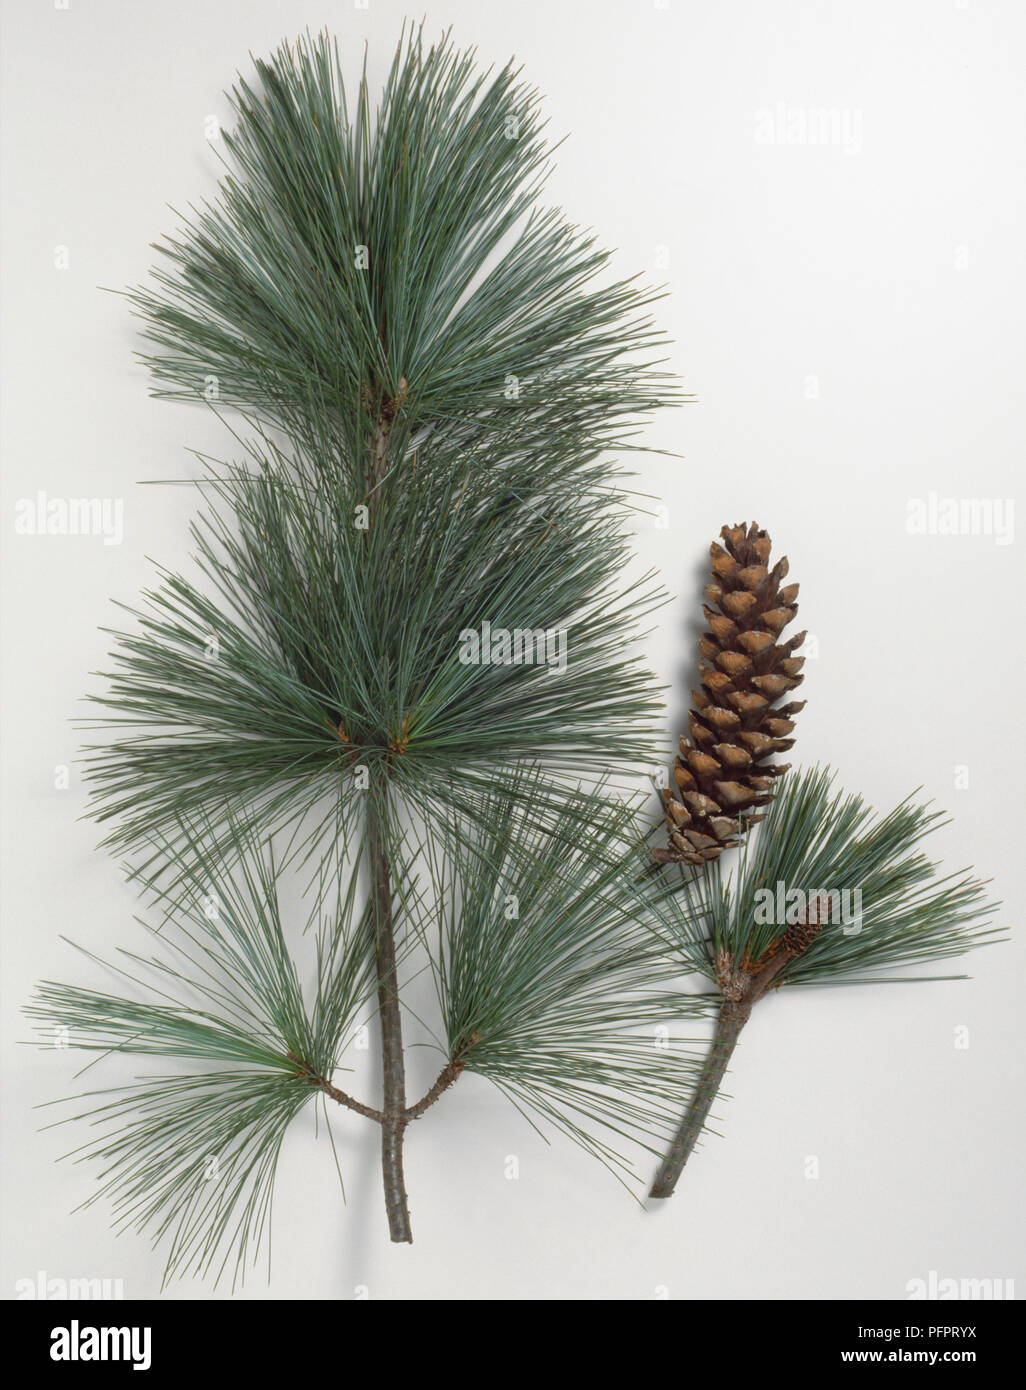 Pinaceae, Pinus wallichiana, Himalayan Pine, grey stem with very slender blue-grey leaves in clusters of five, with bloomy young shoot and brown hanging cone. - Stock Image